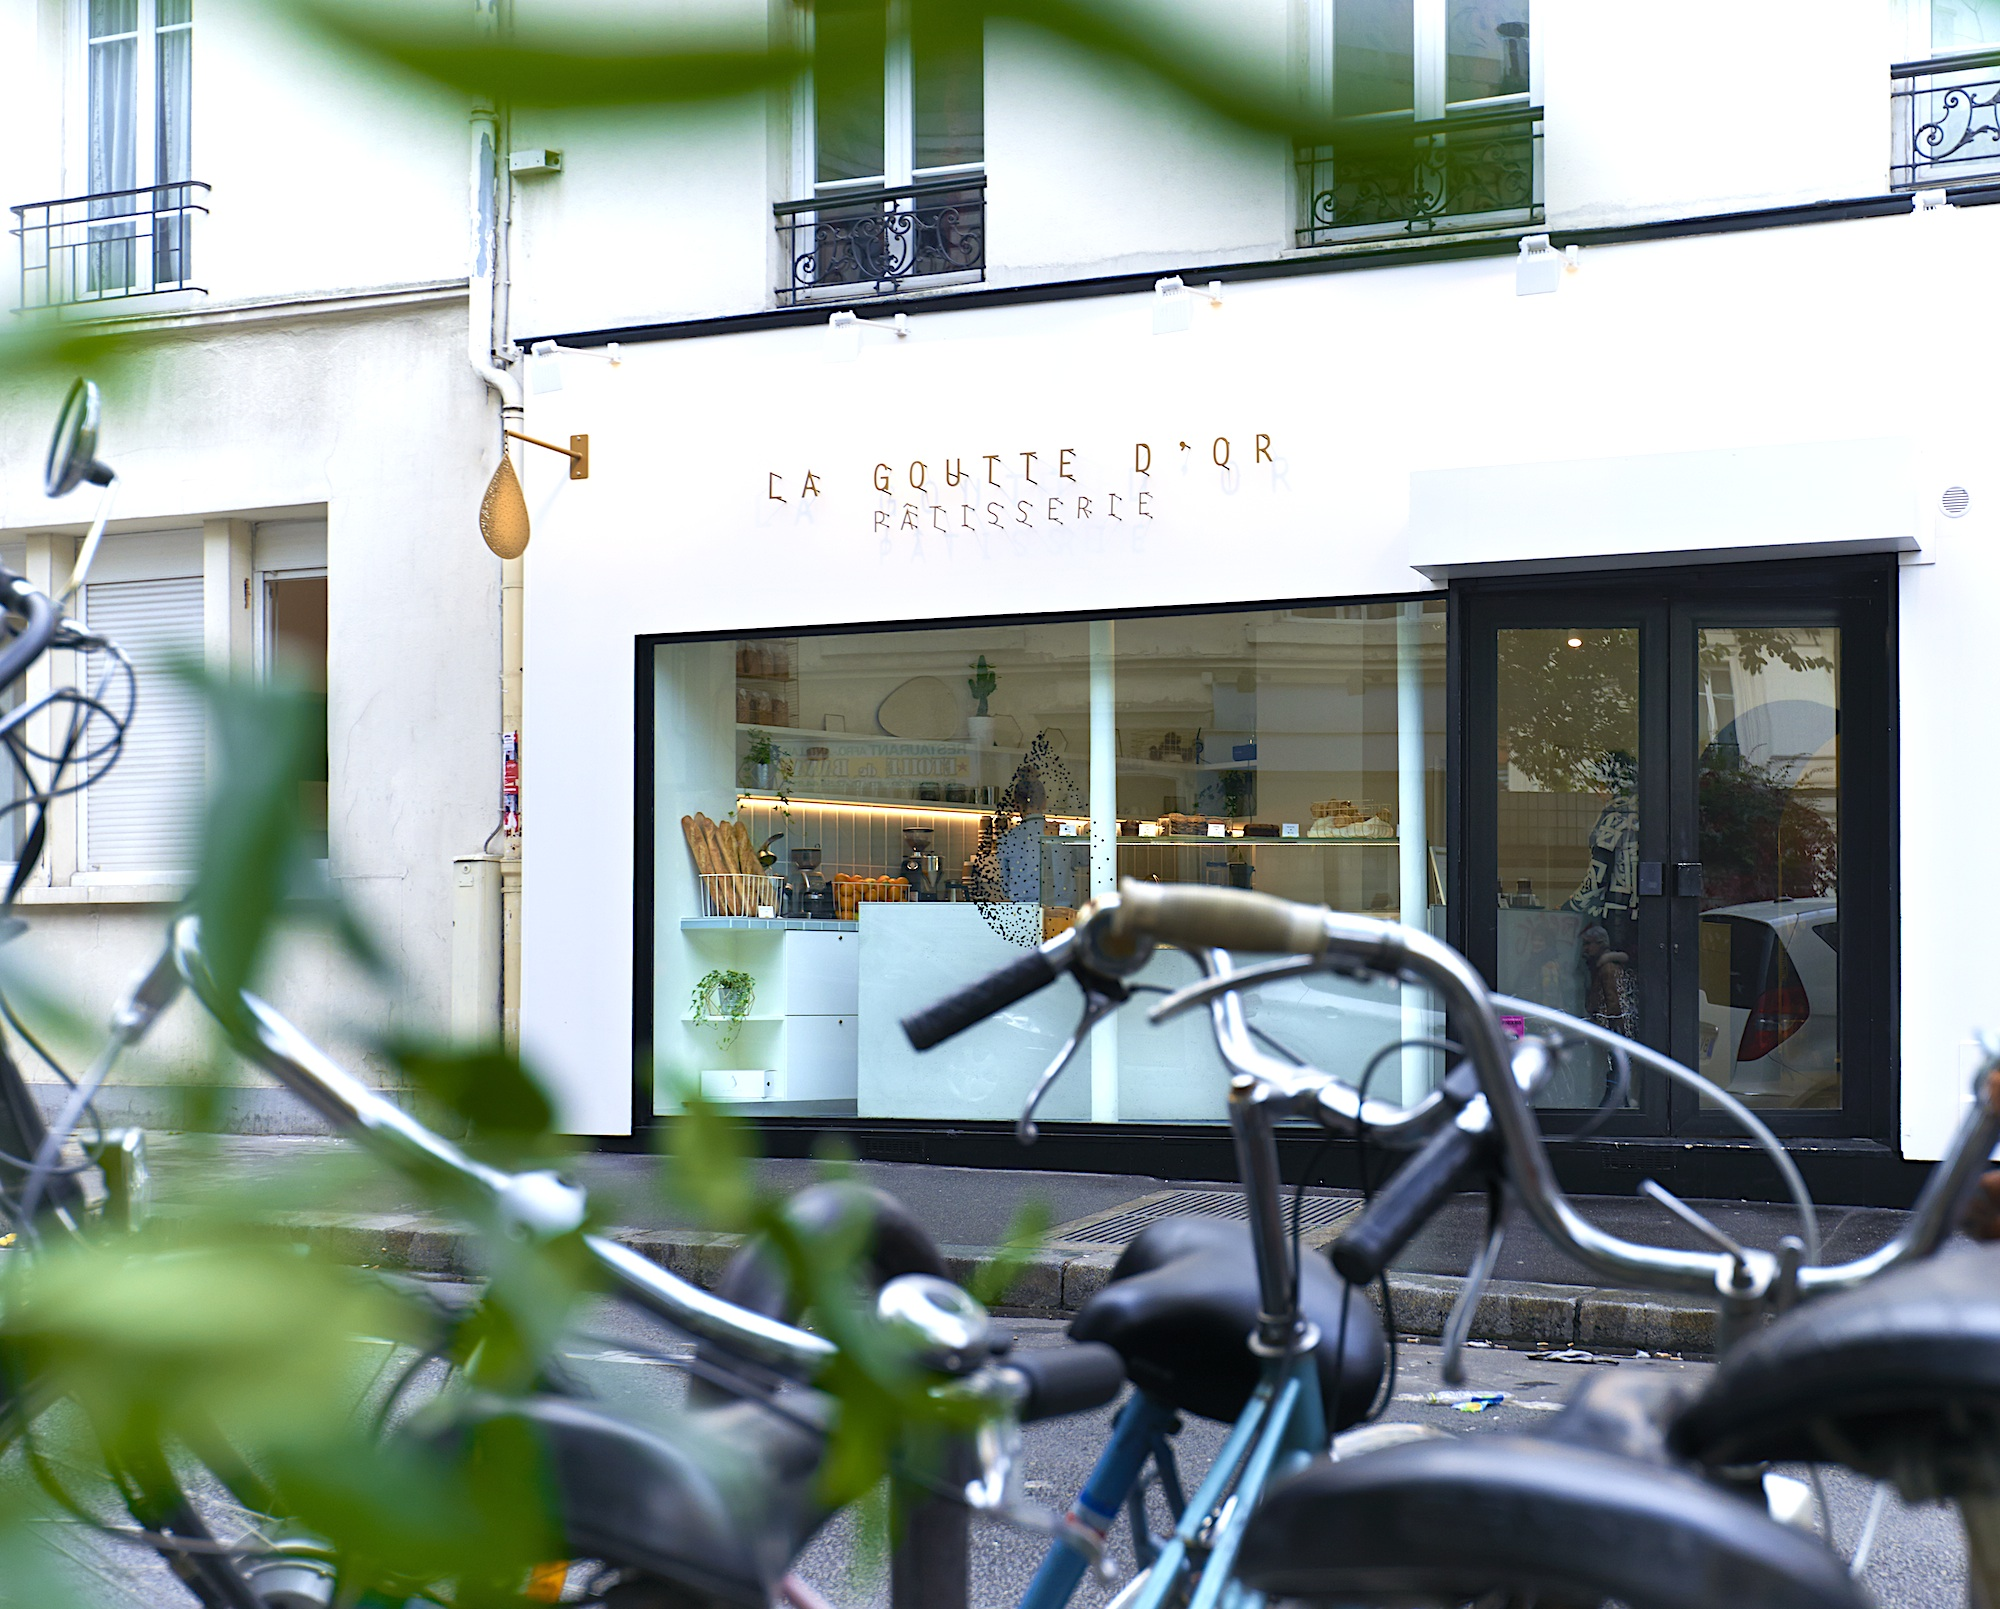 One of the best cake shops in Paris is La Goutte d'Or patisserie in the 18th arrondissement, with its large window running across the entire space.